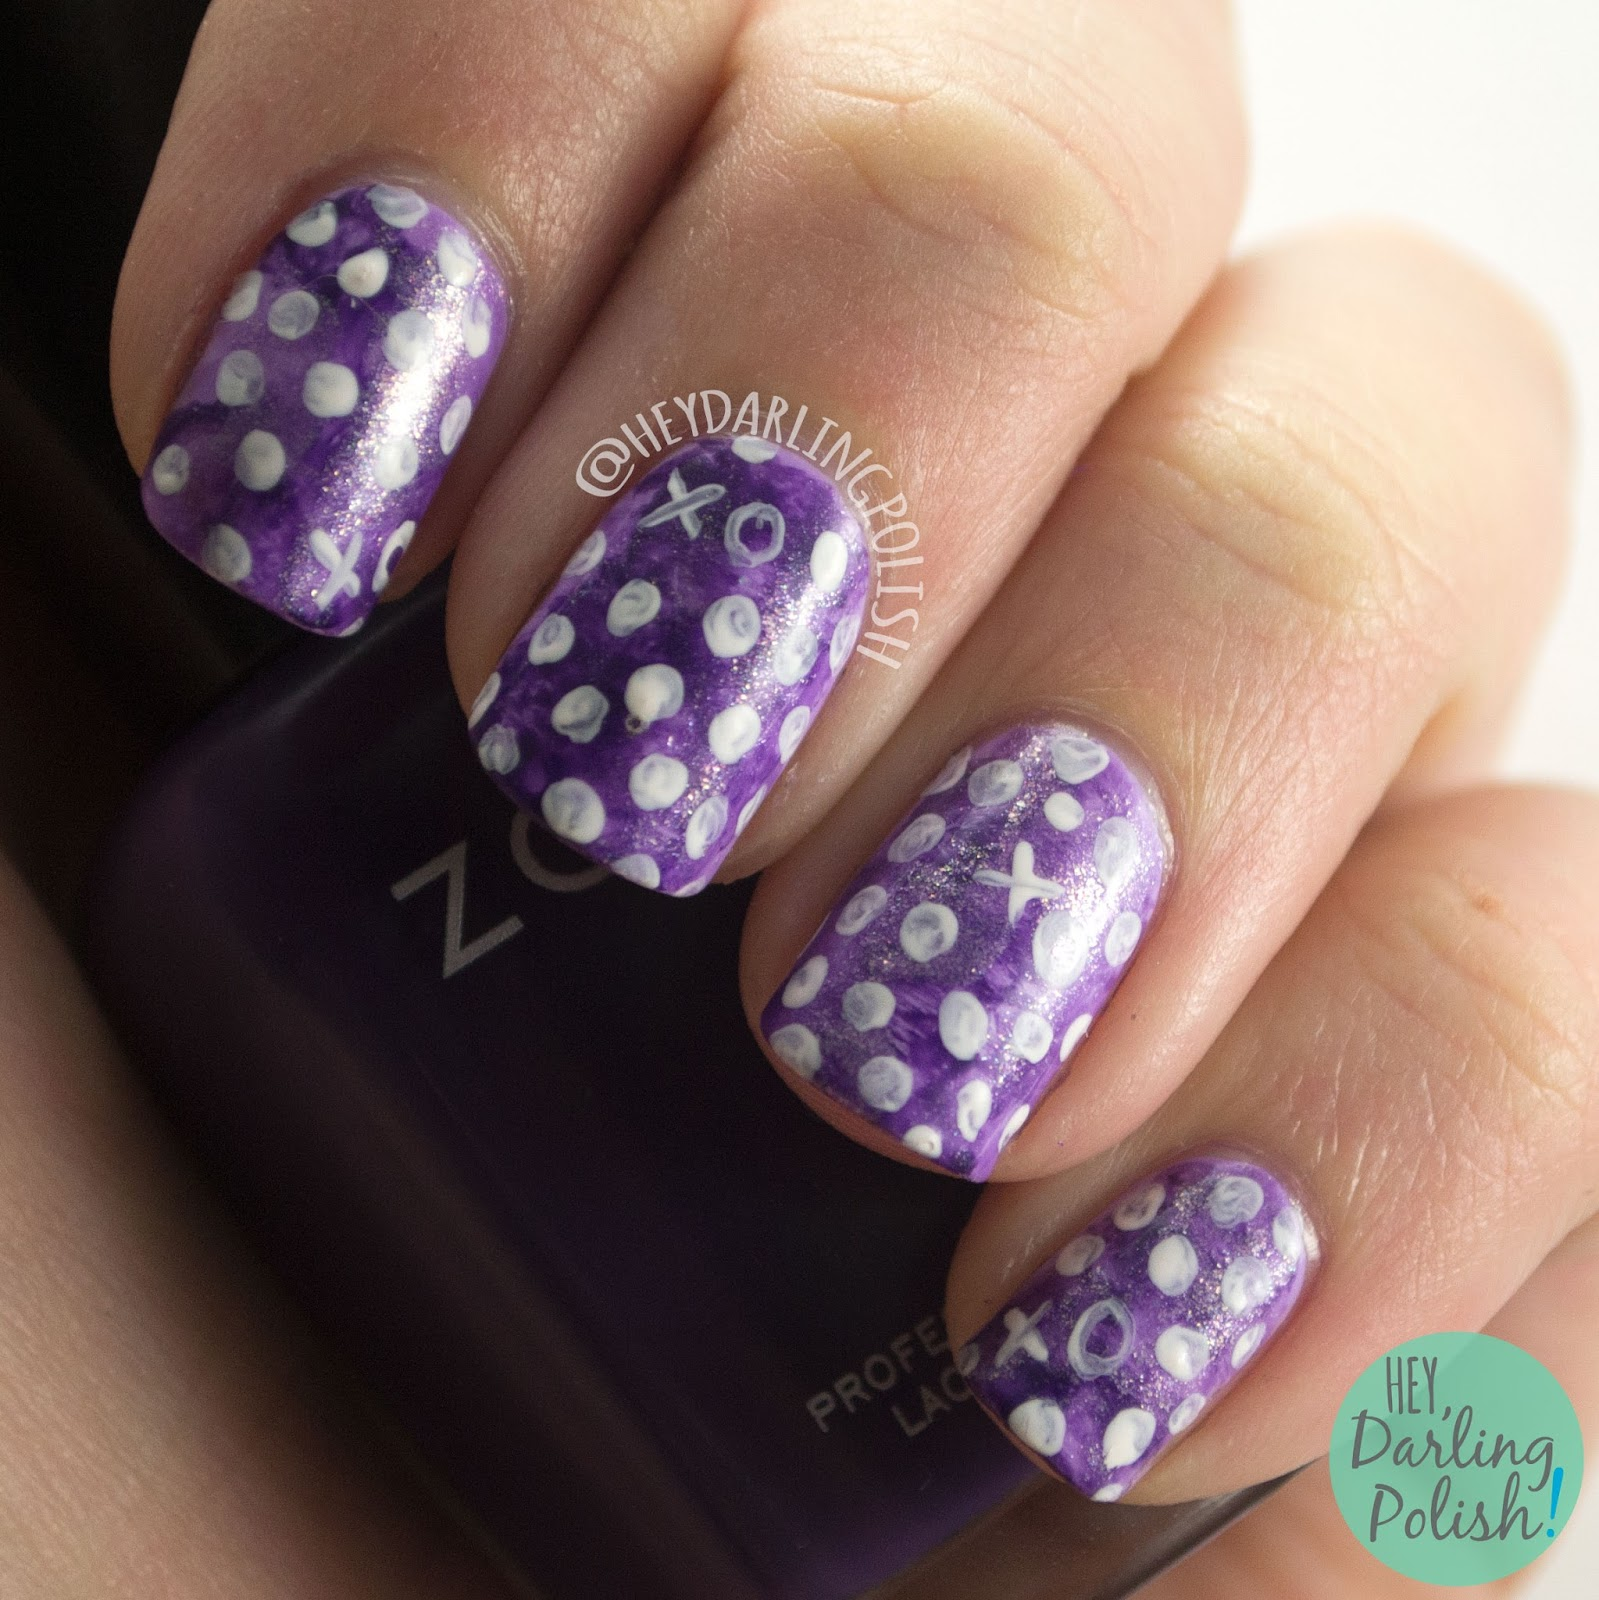 nails, nail art, nail polish, hey darling polish, white, polka dots, watercolor, purple, 52 week challenge